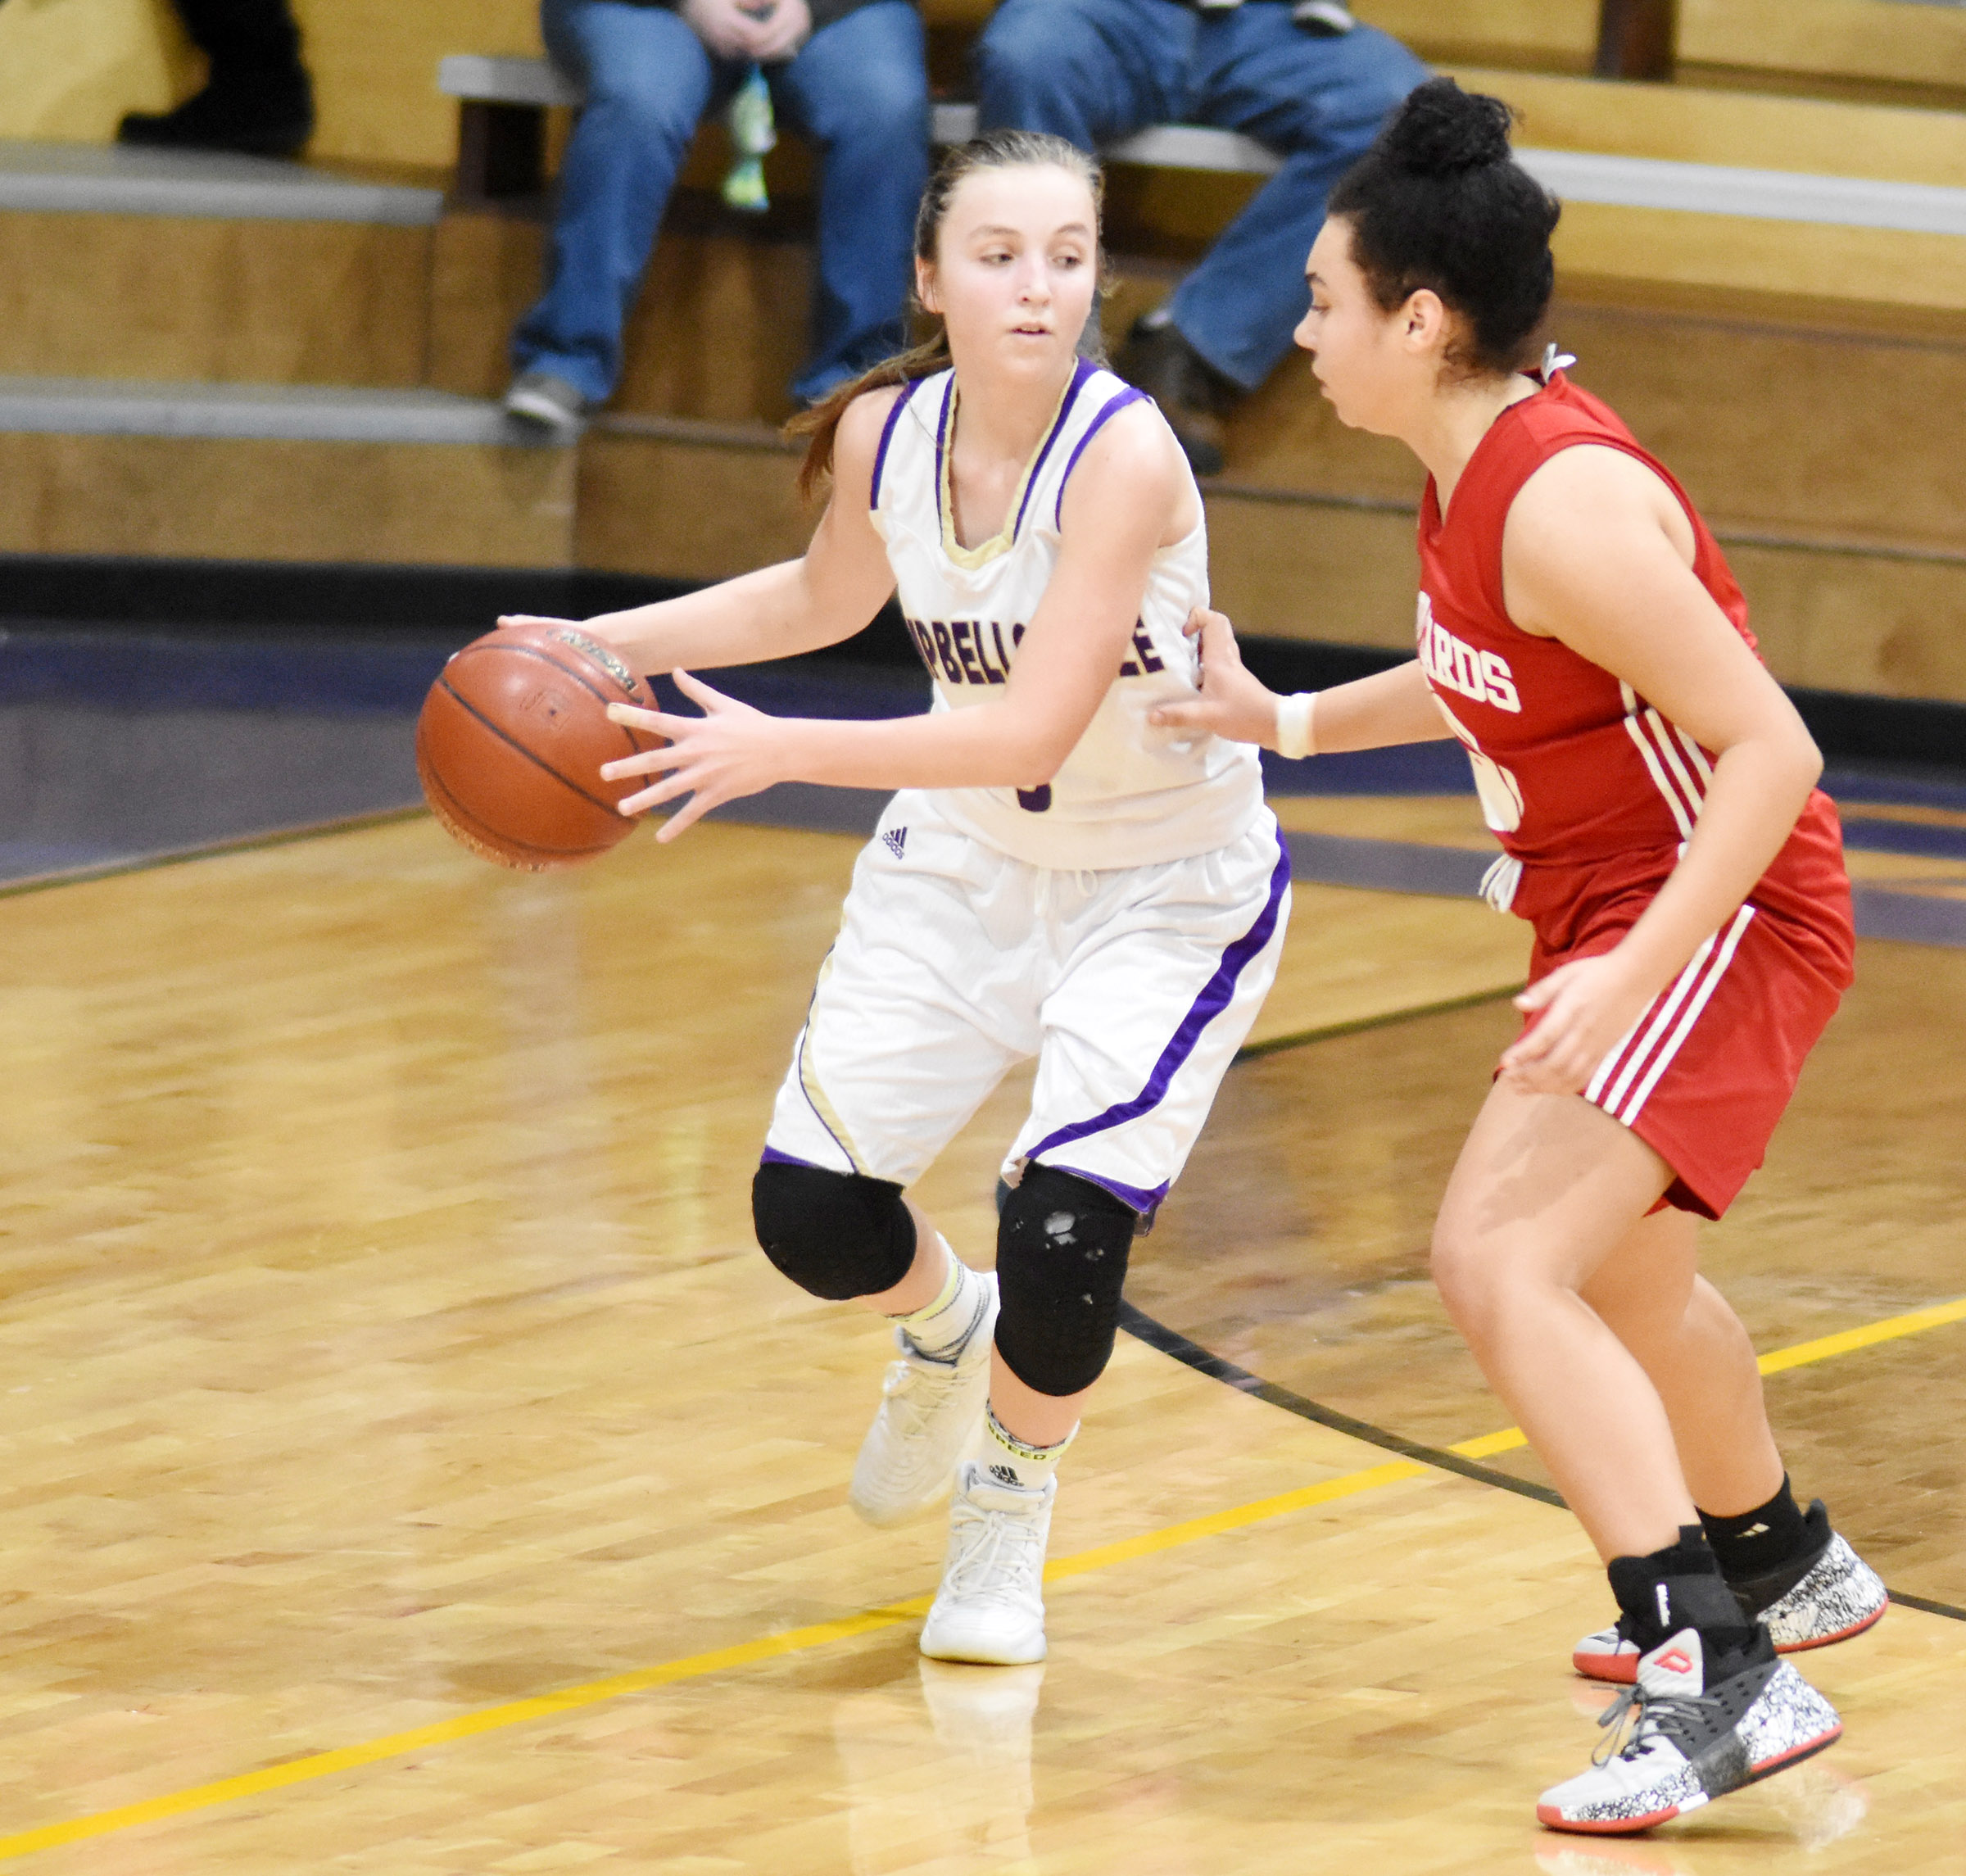 Campbellsville Middle School eighth-grader Lainey Watson dribbles.